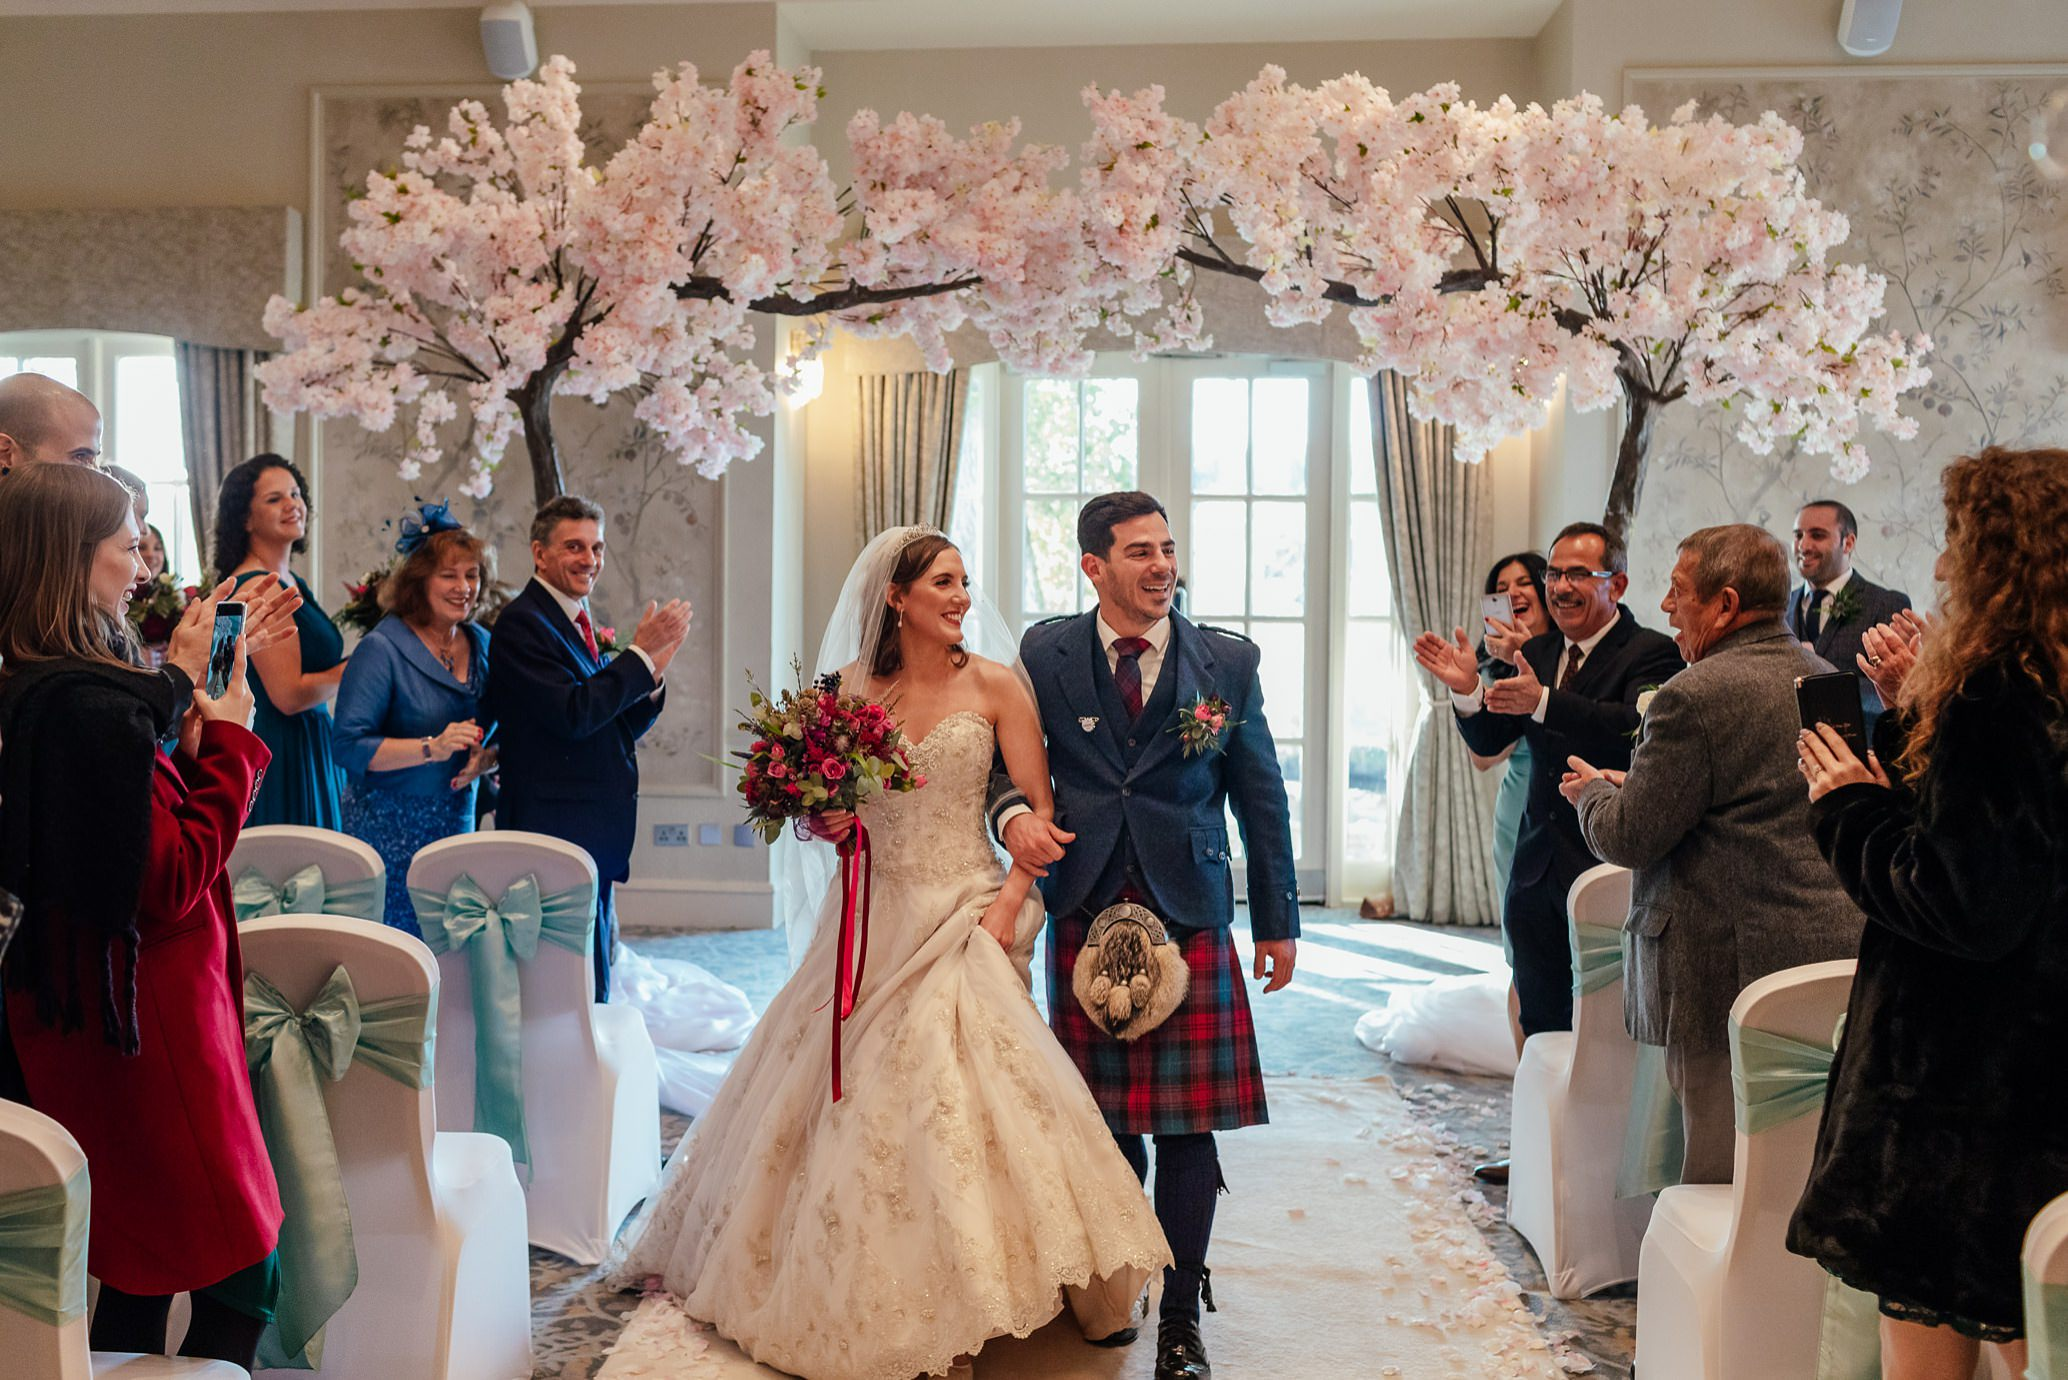 maryculter house hotel aberdeenshire wedding ceremony in ballroom with cherry blossoms bride groom walking down aisle